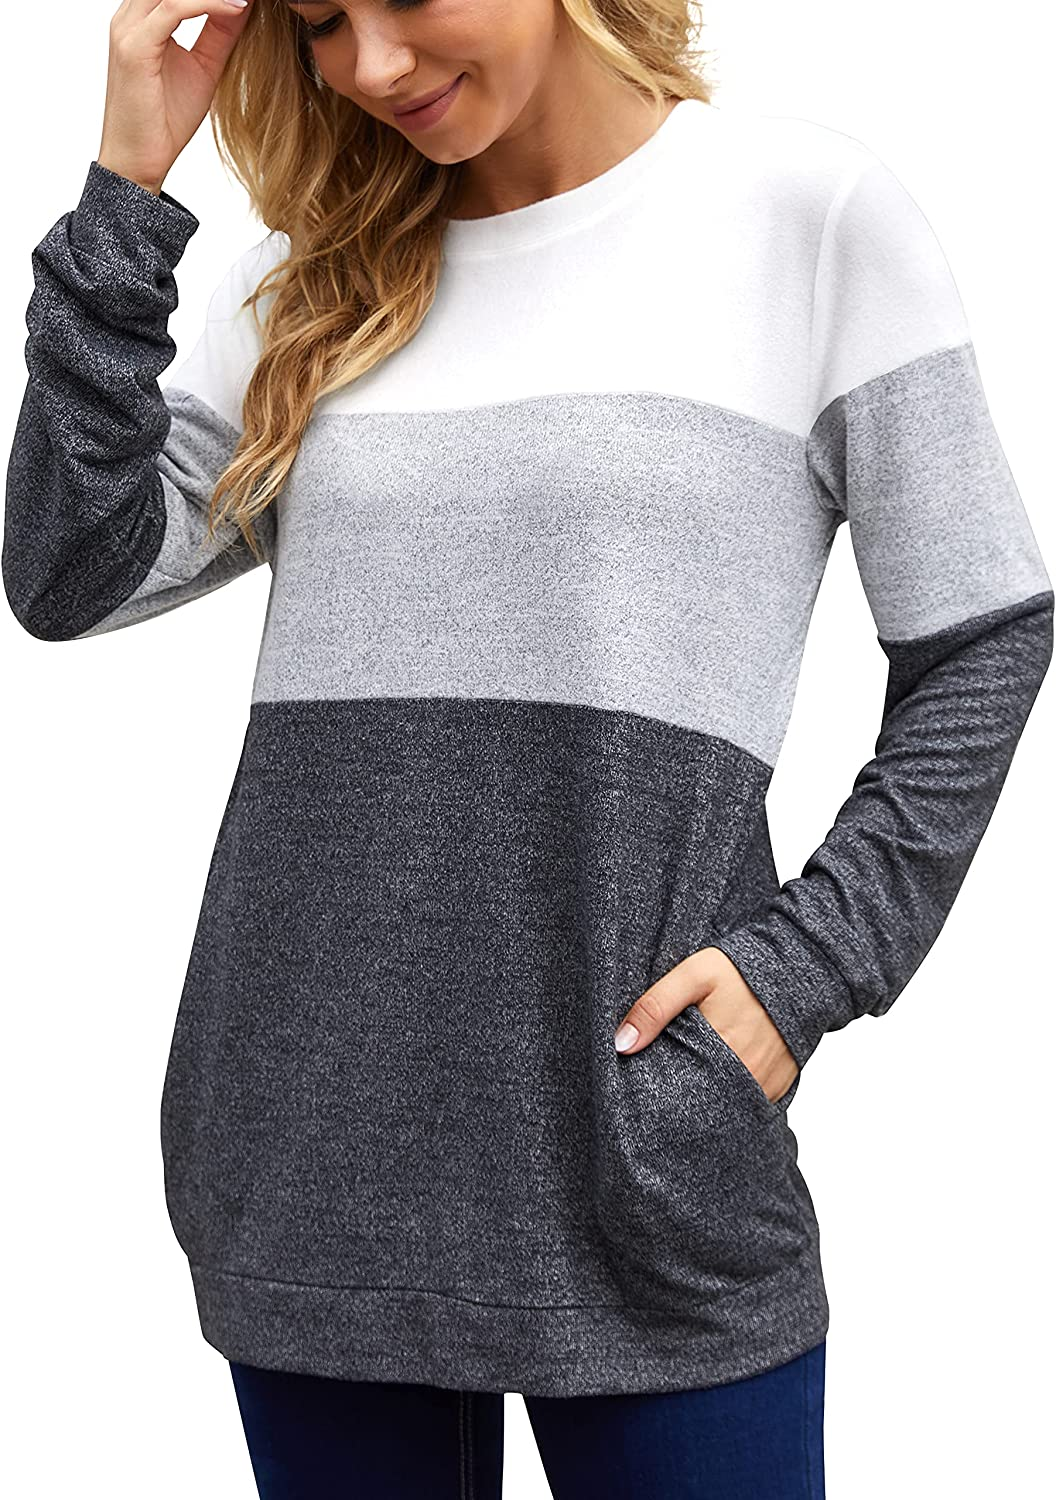 Ahacool Long Sleeve Shirts for Women Color Block Tops with Pockets Sweatshirts